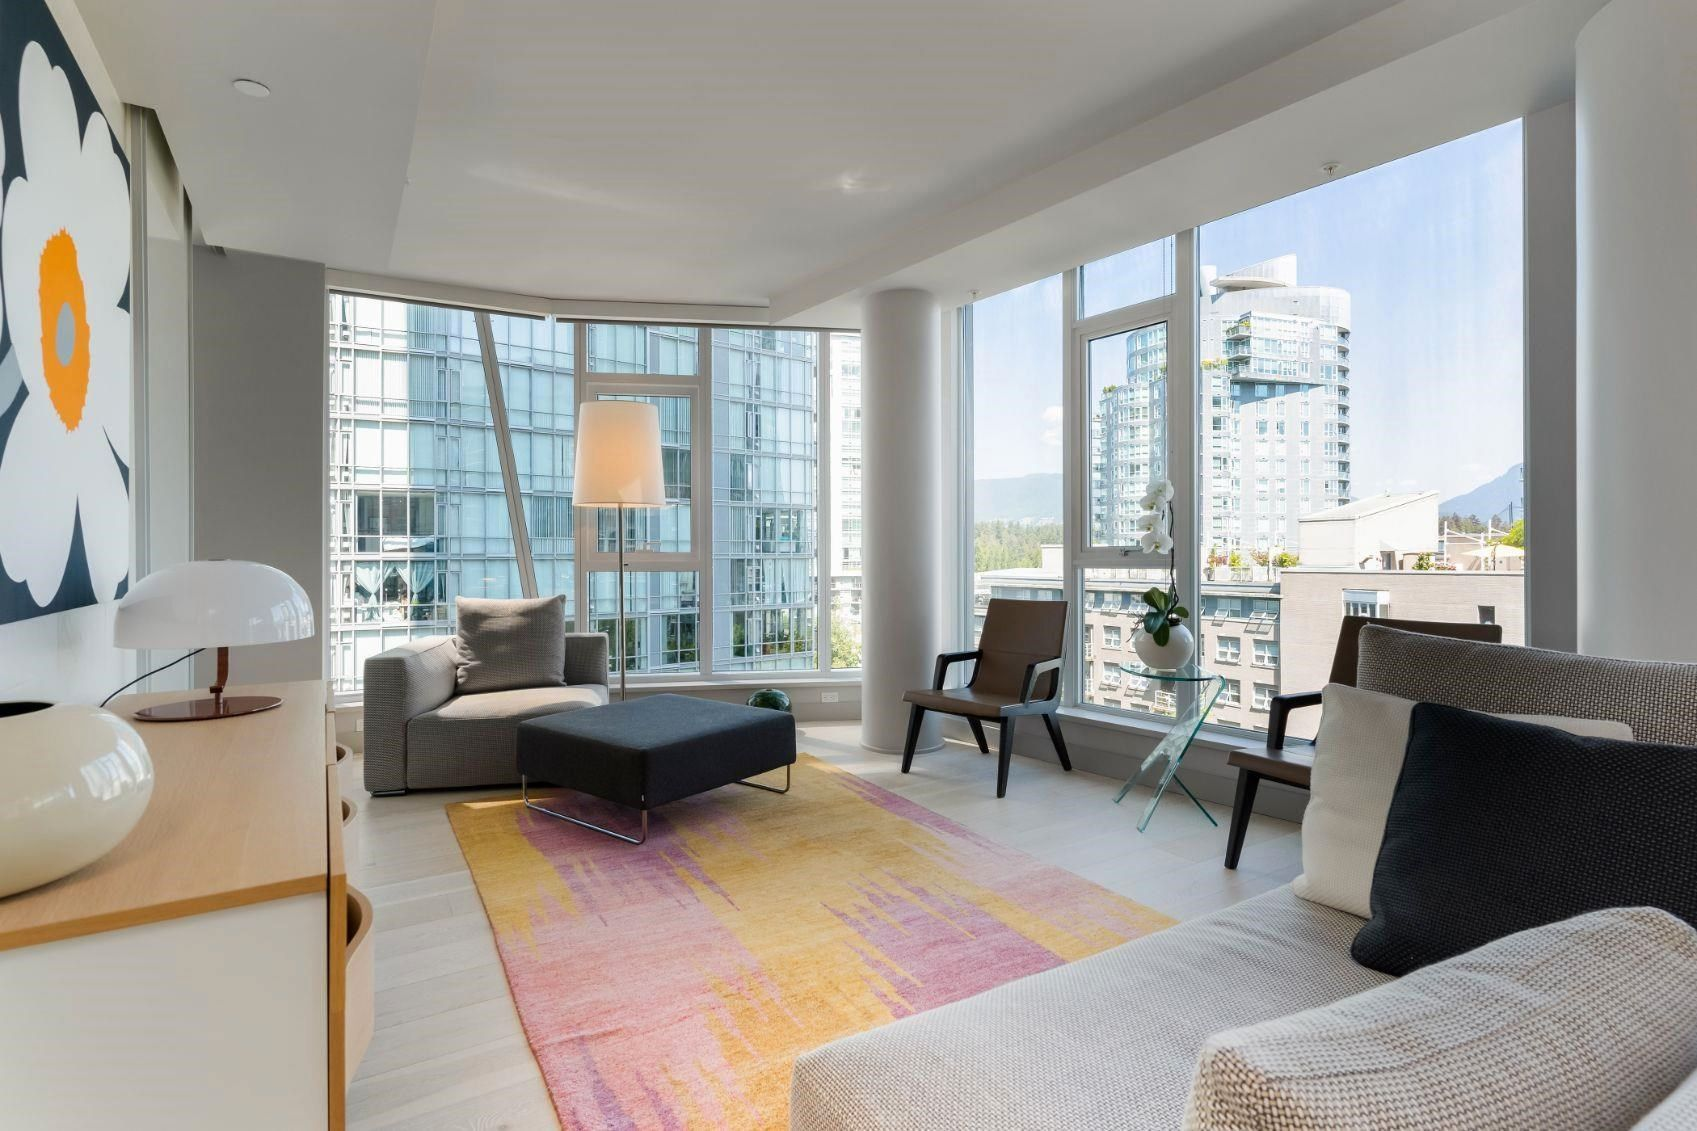 """Main Photo: 601 1499 W PENDER Street in Vancouver: Coal Harbour Condo for sale in """"WEST PENDER PLACE"""" (Vancouver West)  : MLS®# R2605894"""